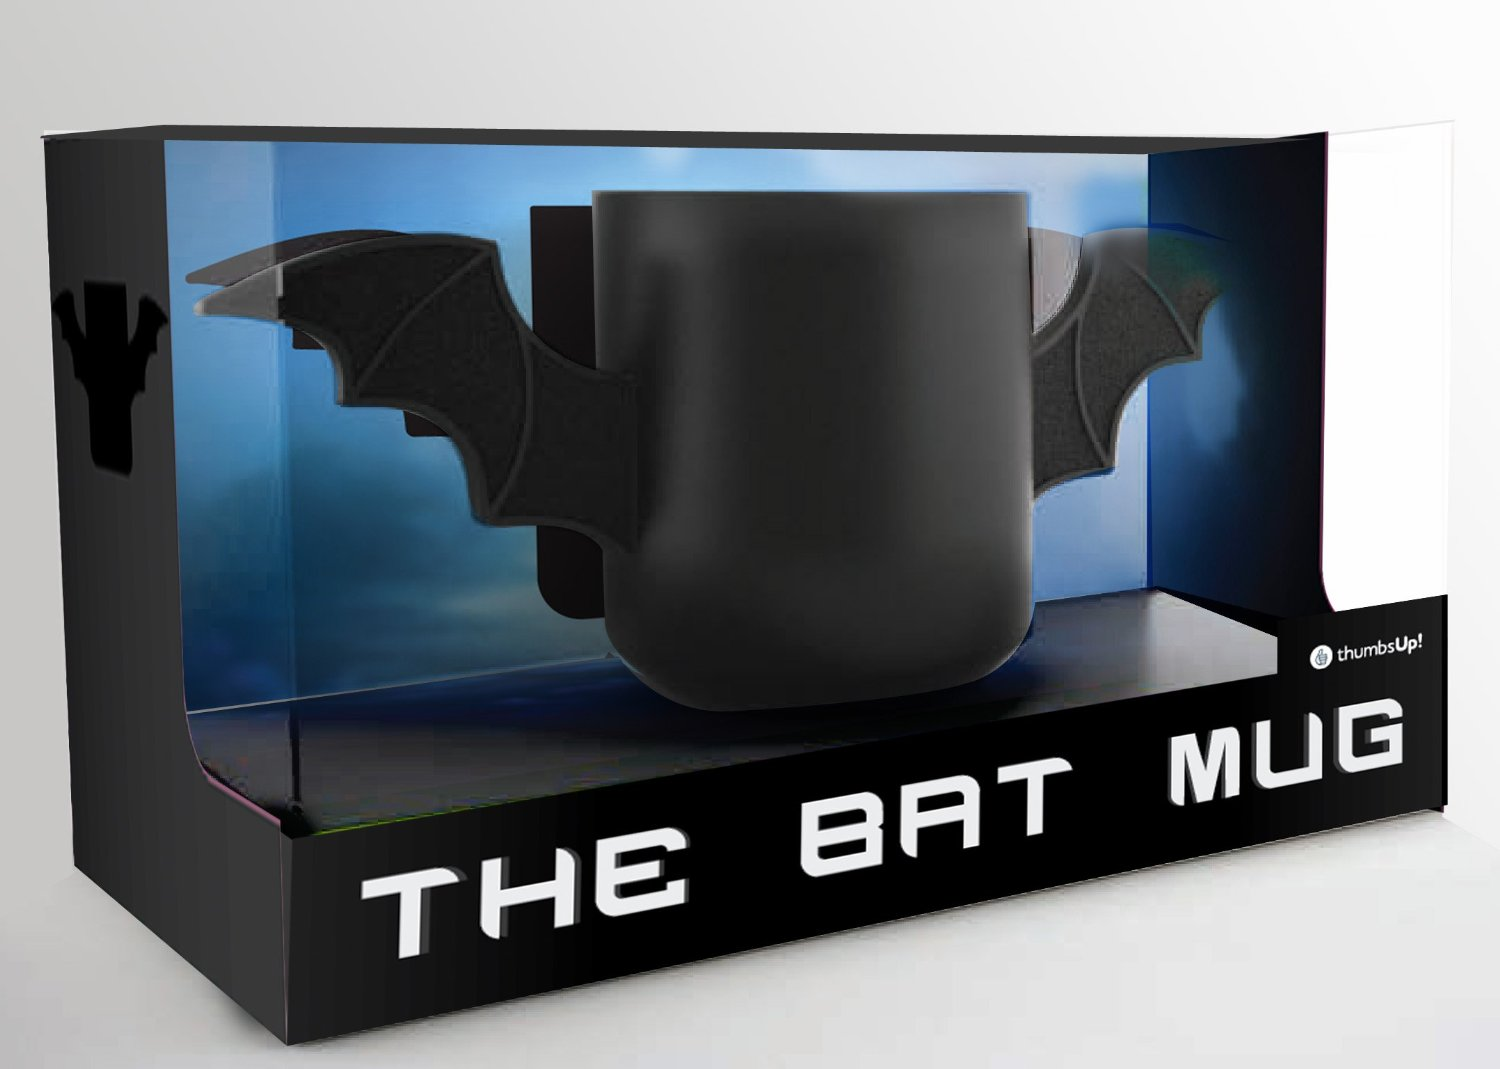 amazon sextoy bat prix